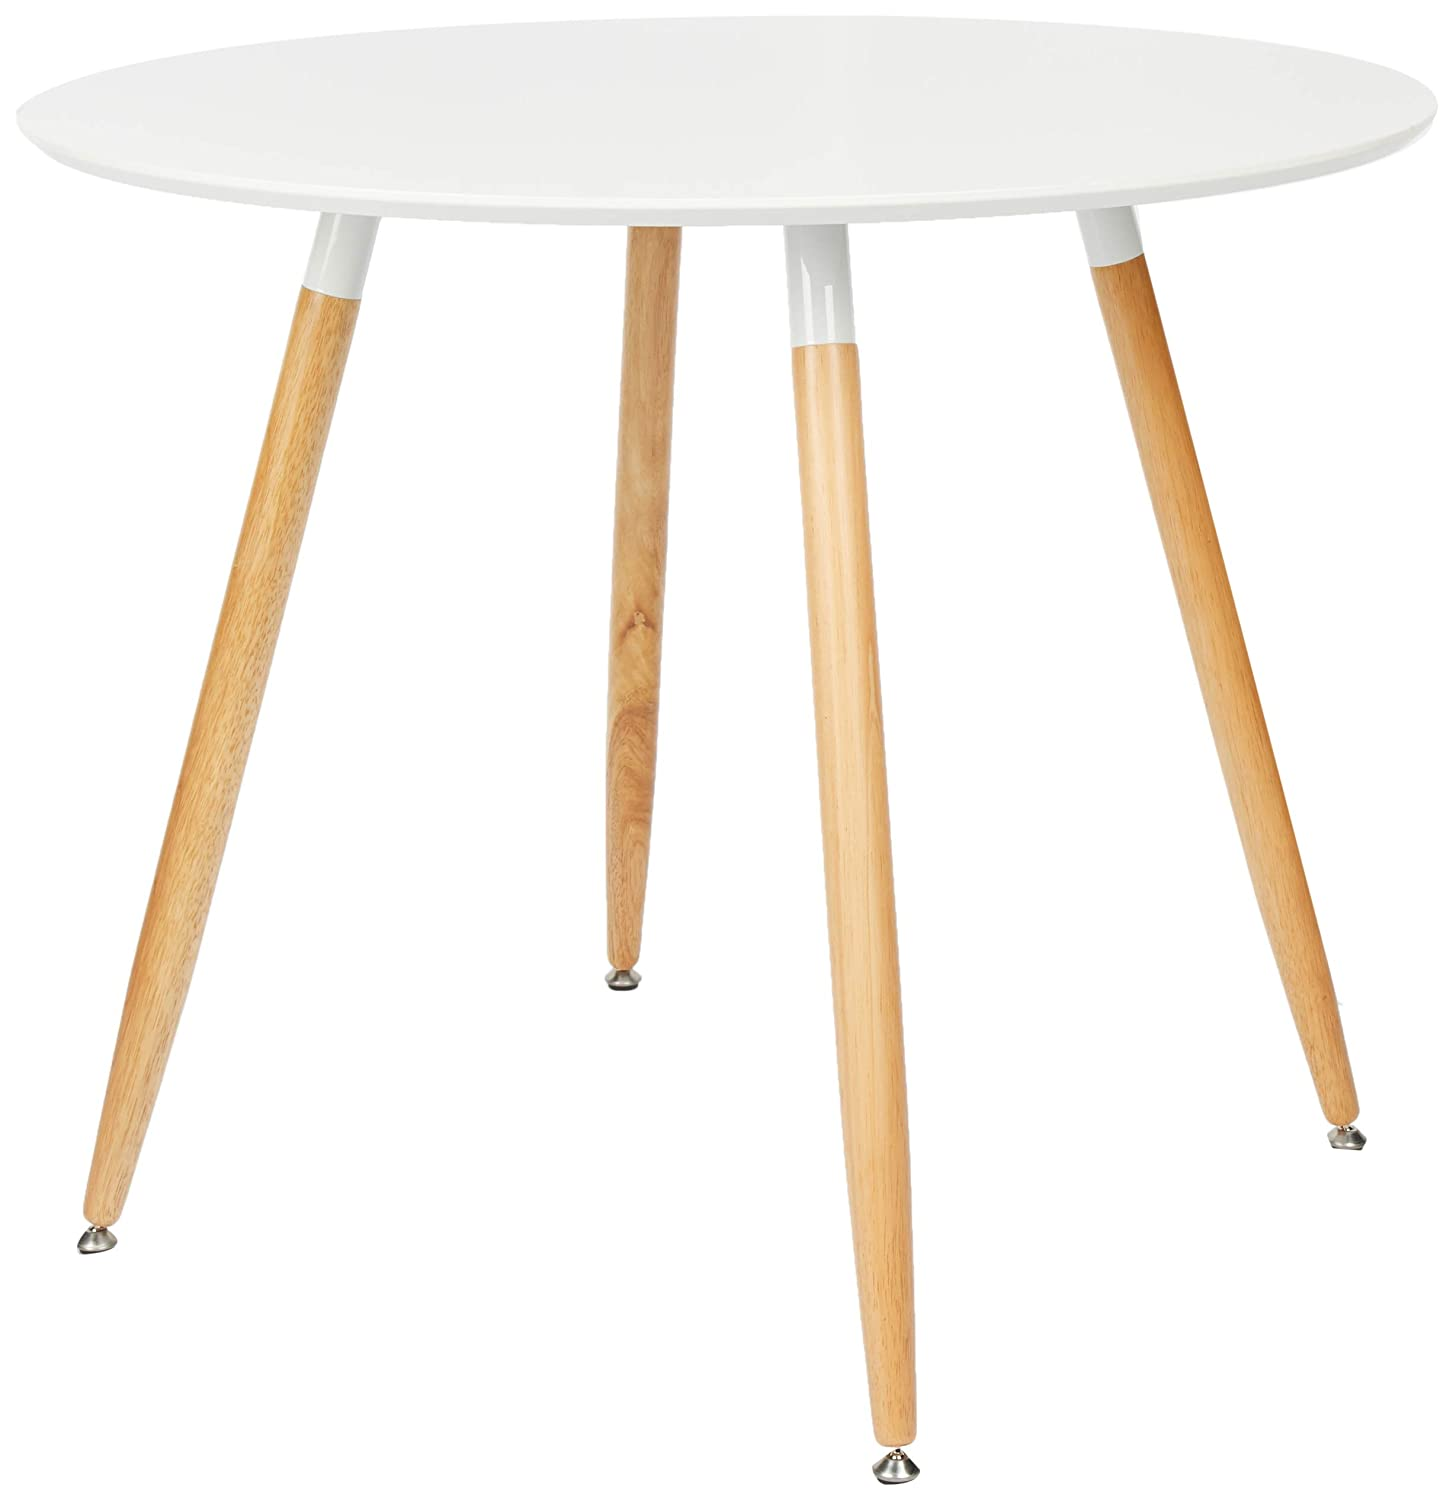 Relaxdays Round Dining Table Arvid Wood Size 74 X 90 Cm Natural Legs Rubber Protective Pads White 90x90x74 Cm Amazon In Home Kitchen